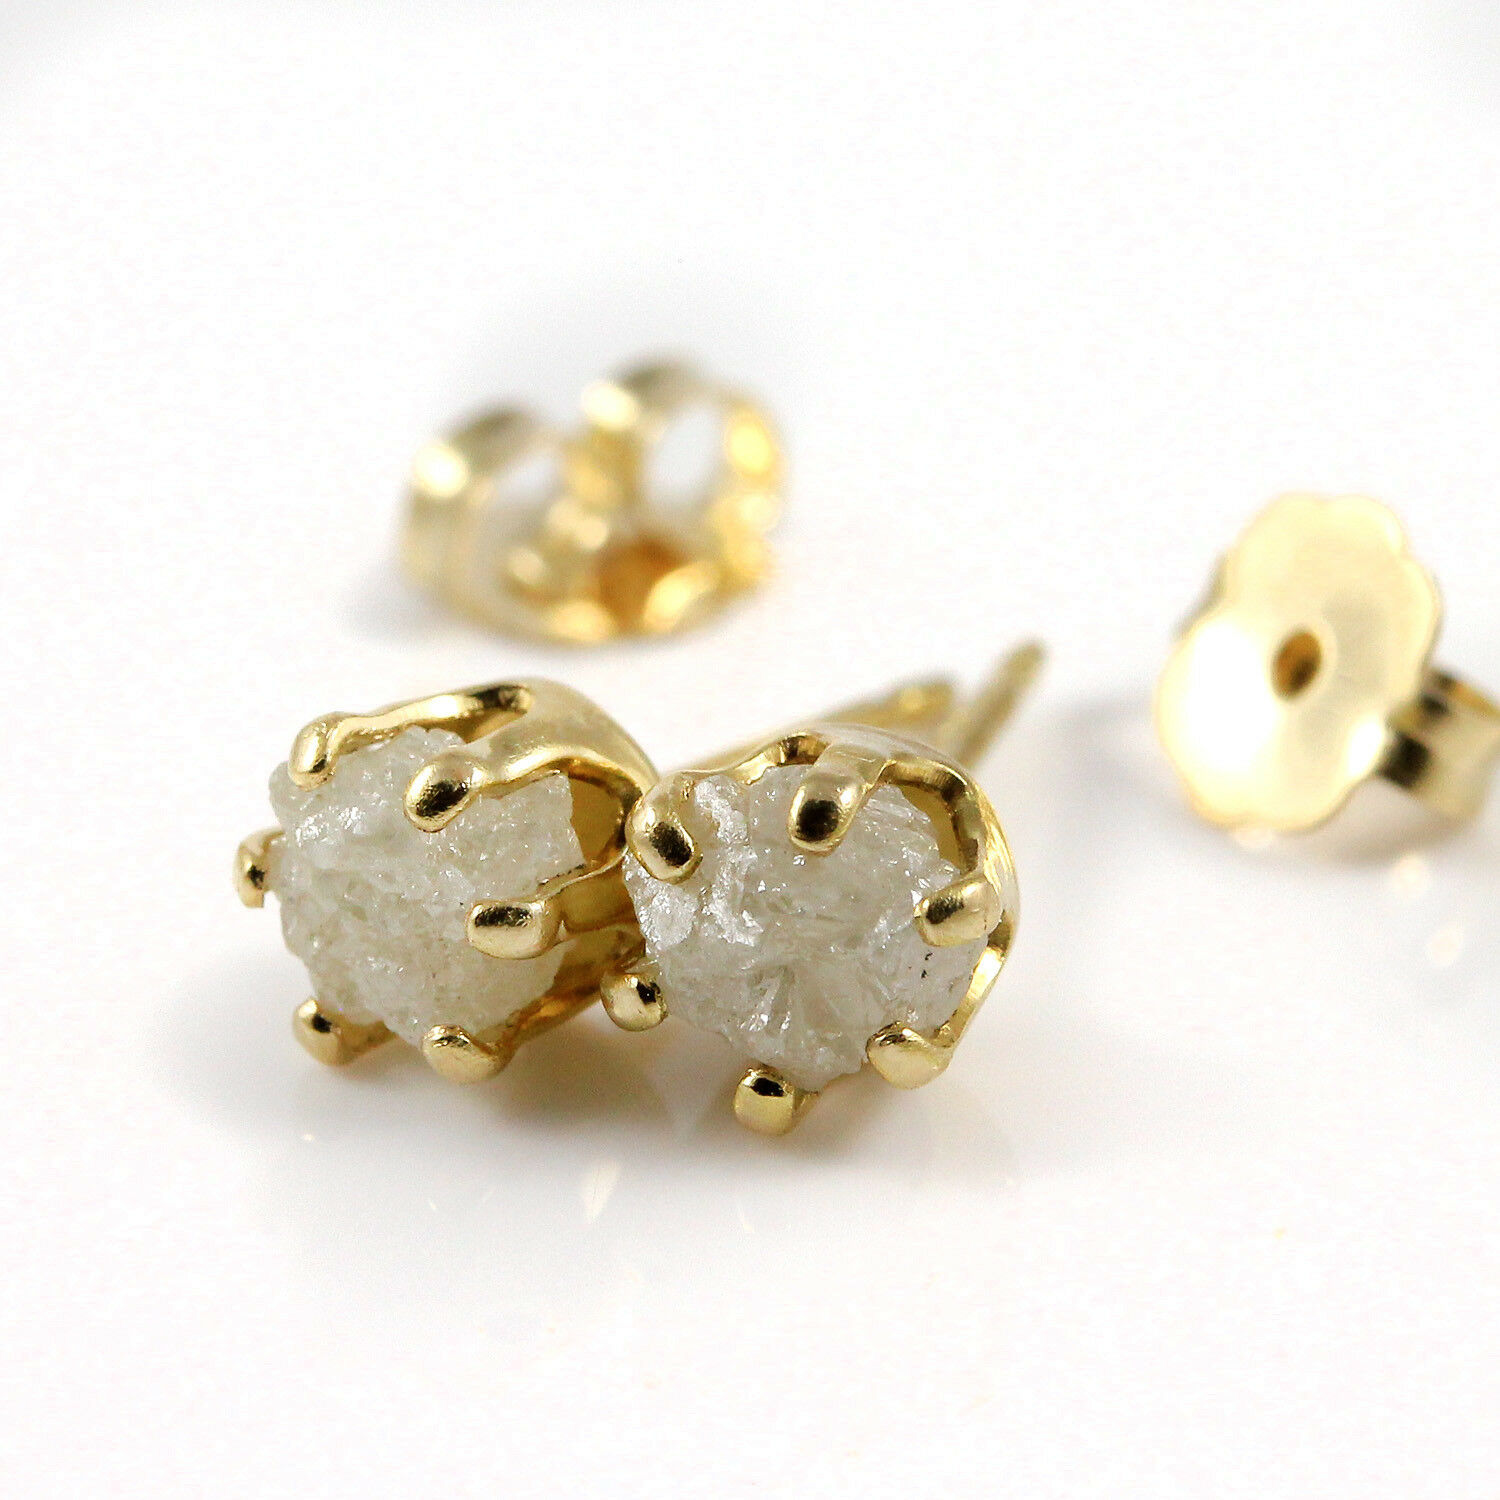 5mm 14K gold Filled Studs Posts - Conflict Free Natural Raw Rough Diamonds White